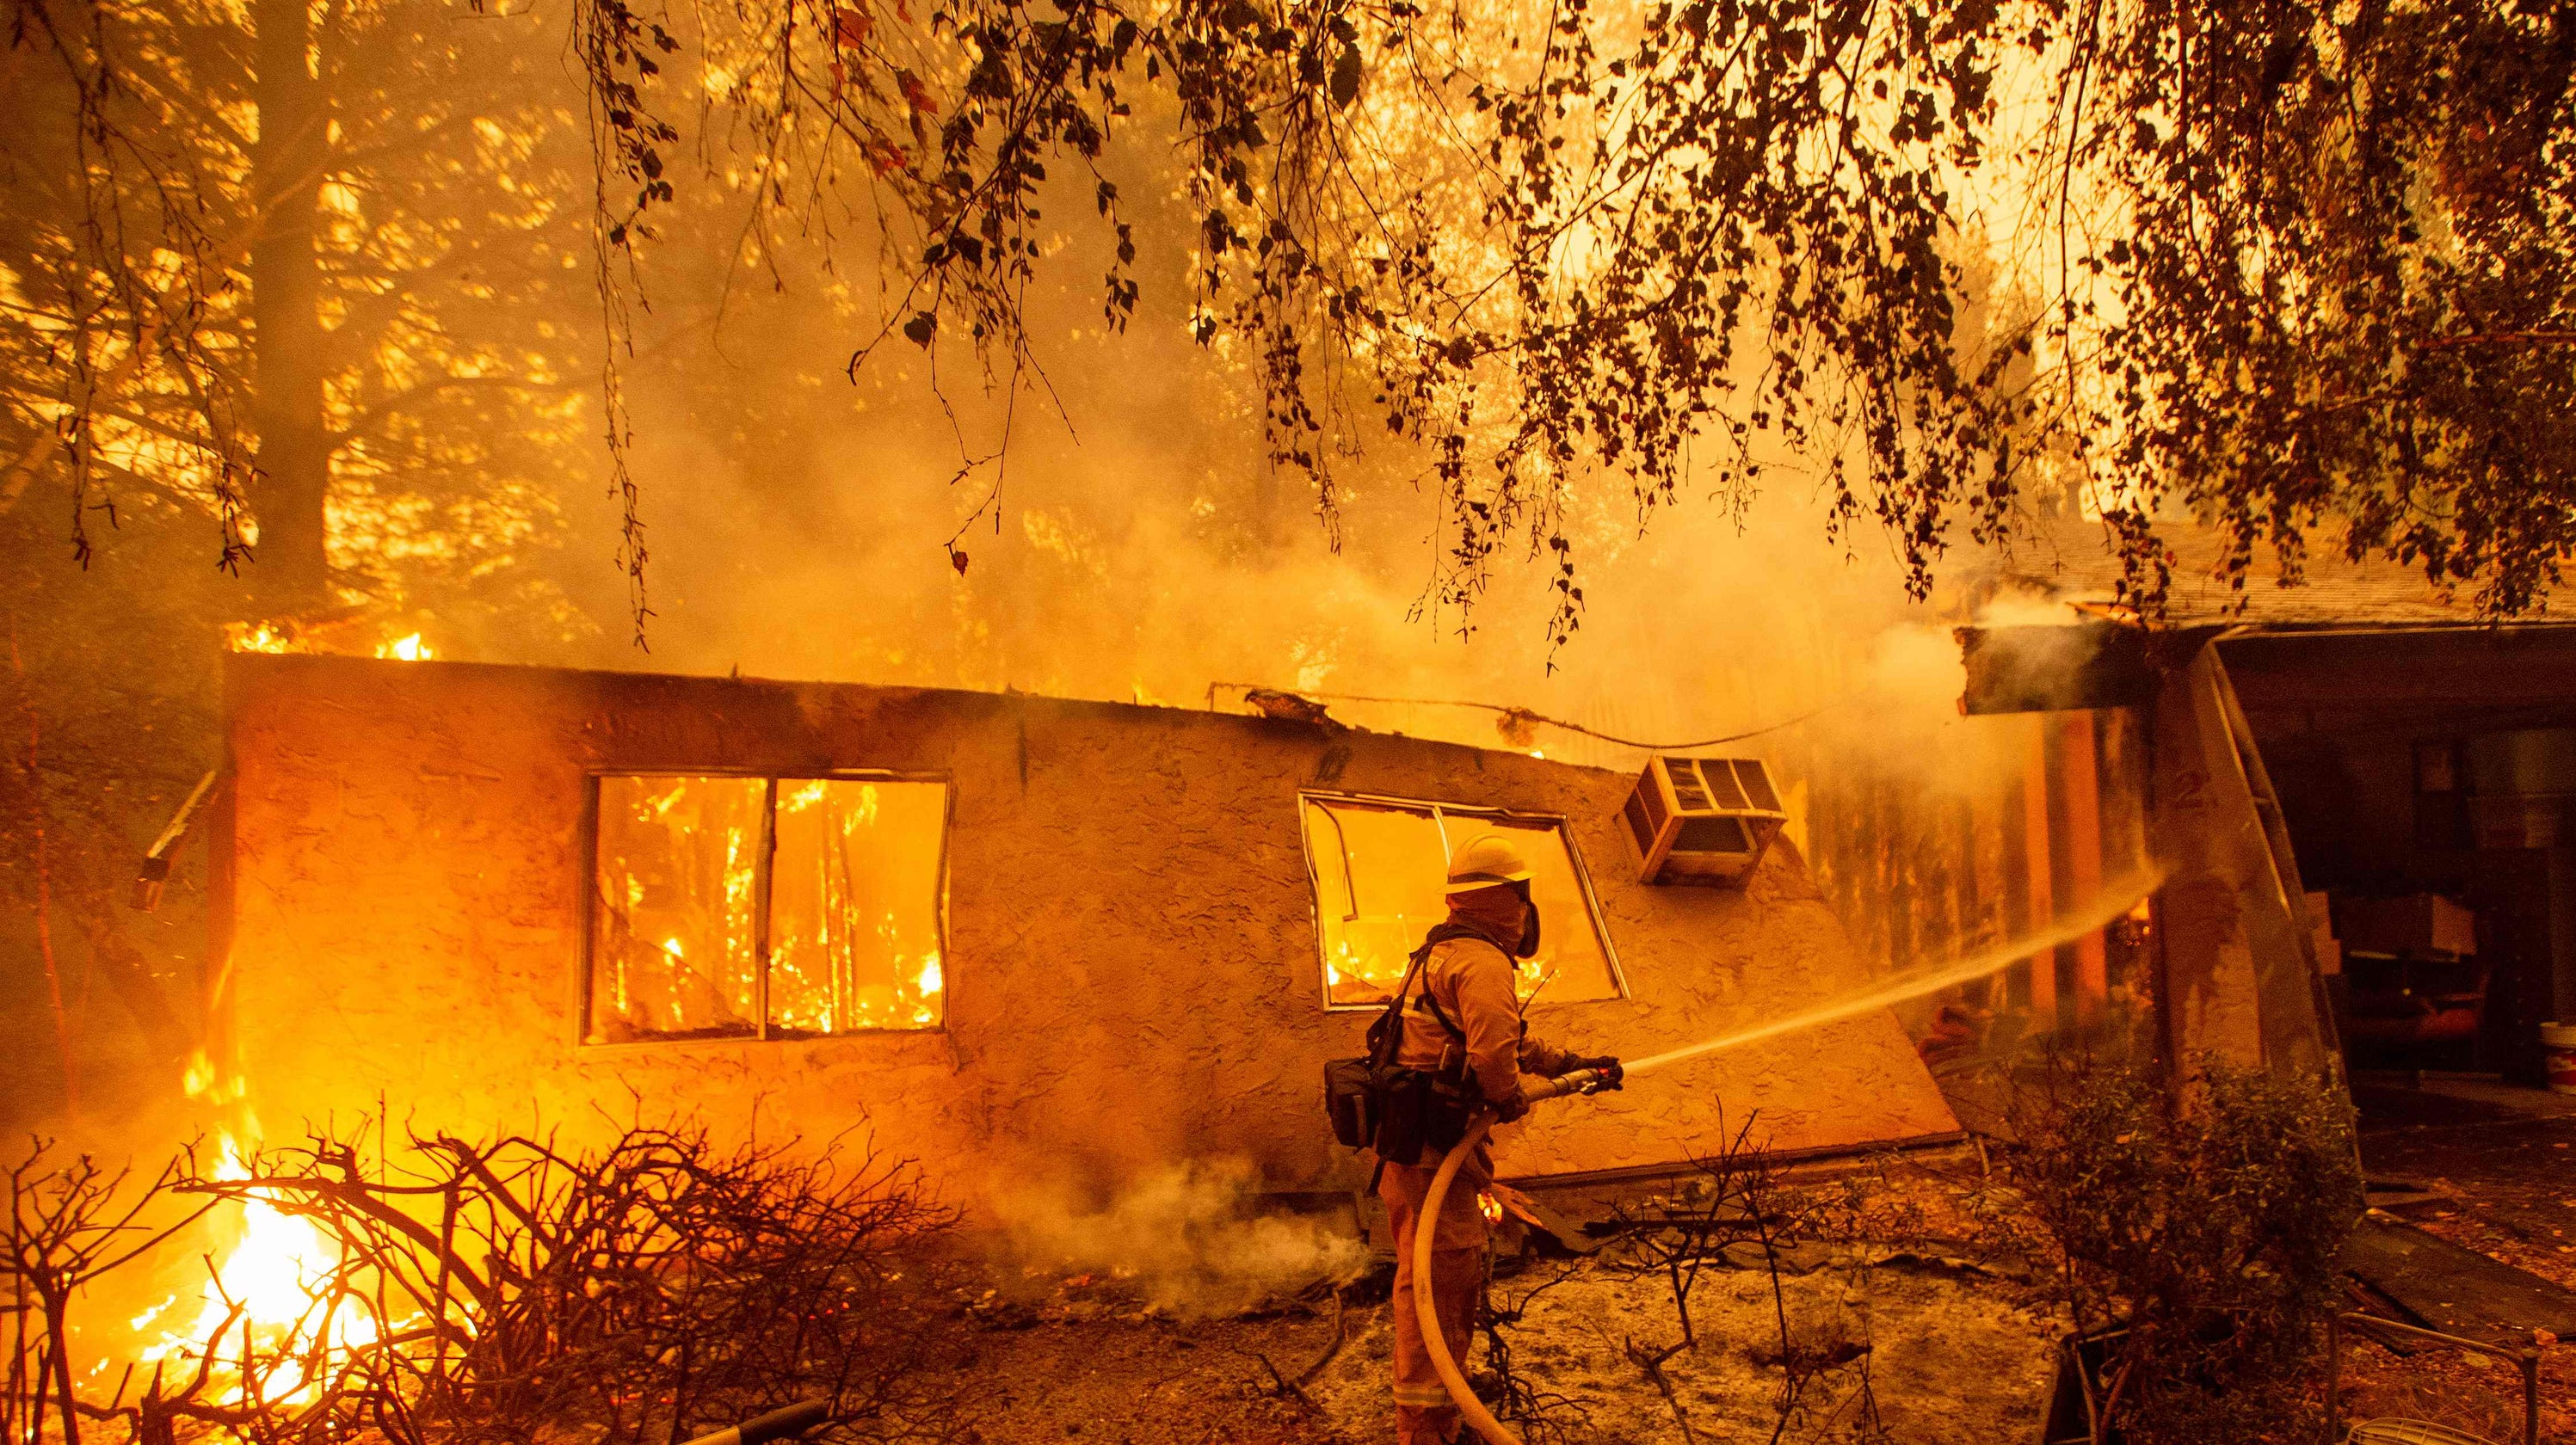 d7cf4aeacb California fires: Firefighter groups criticize Donald Trump's comments